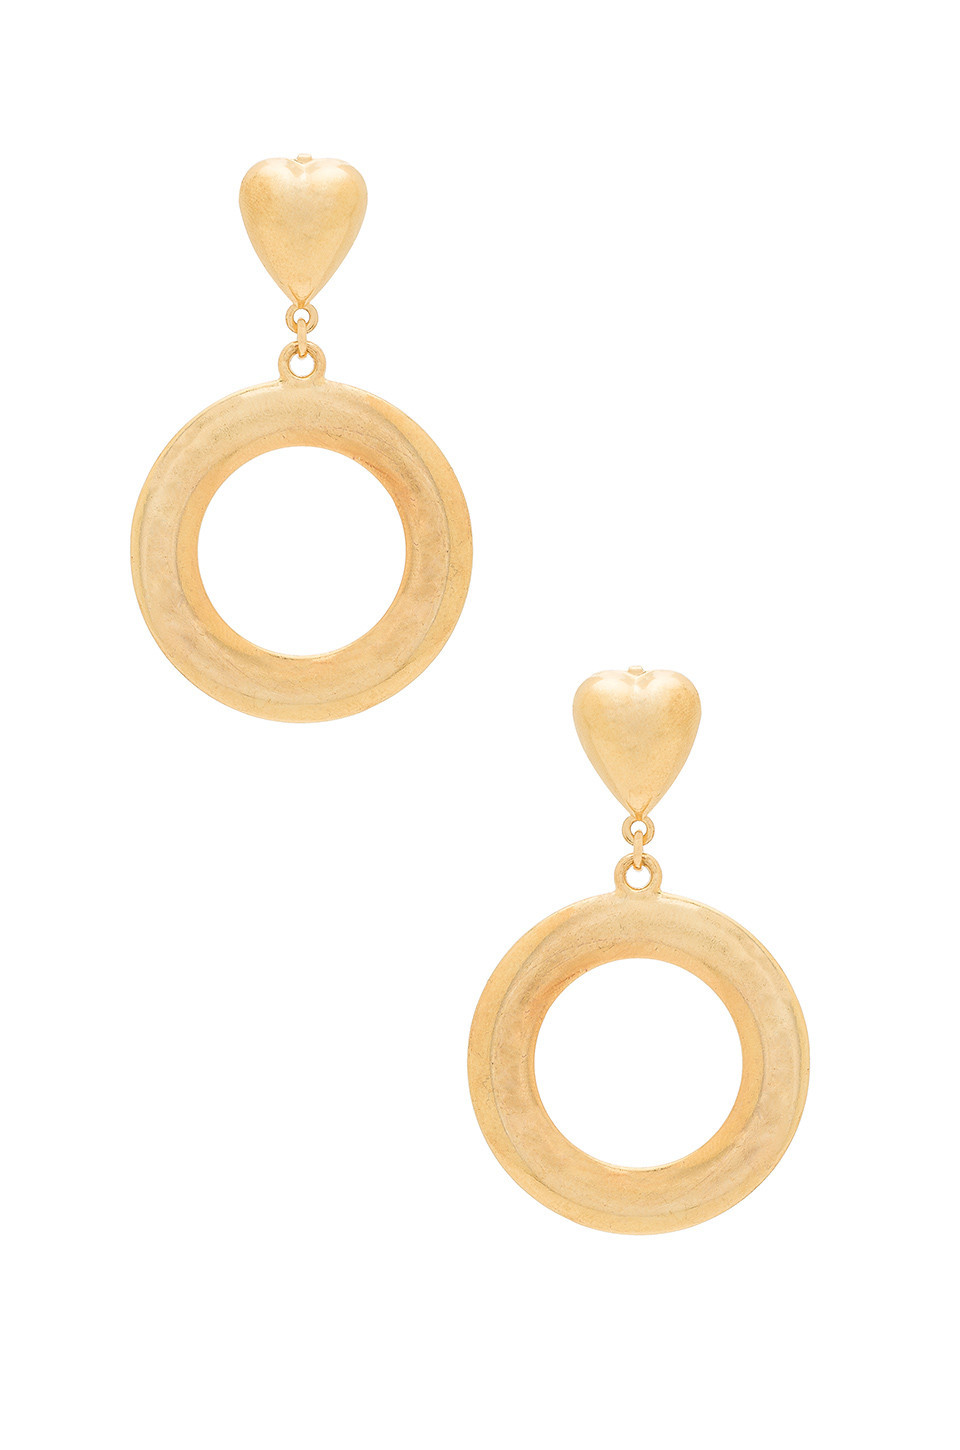 Frasier Sterling Oh My Earrings in gold / metallic